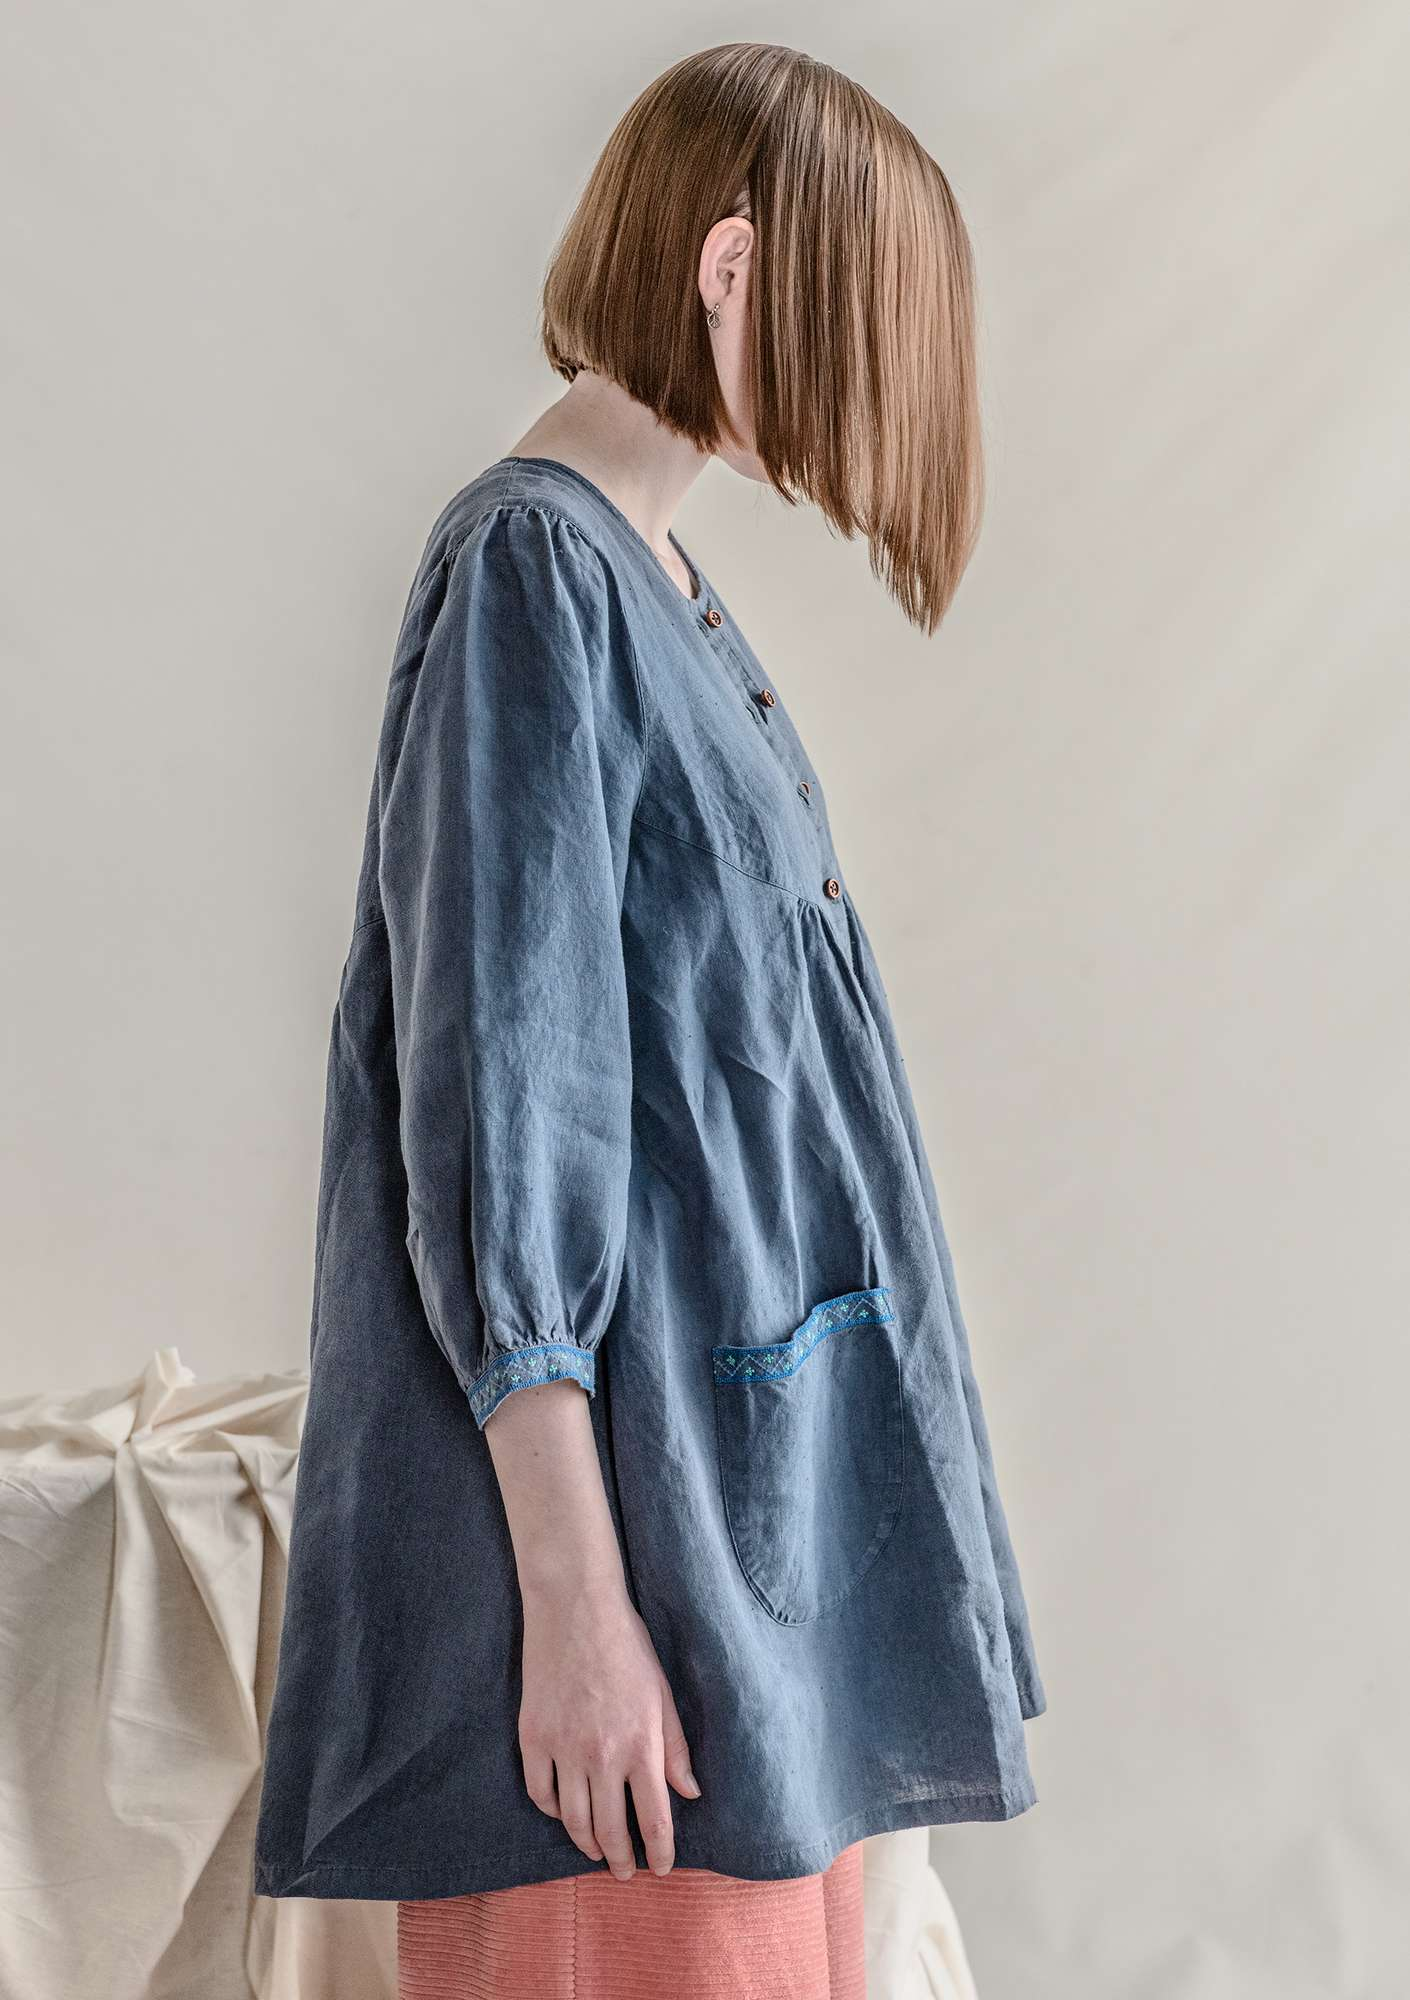 Artist's blouse in linen muted blue